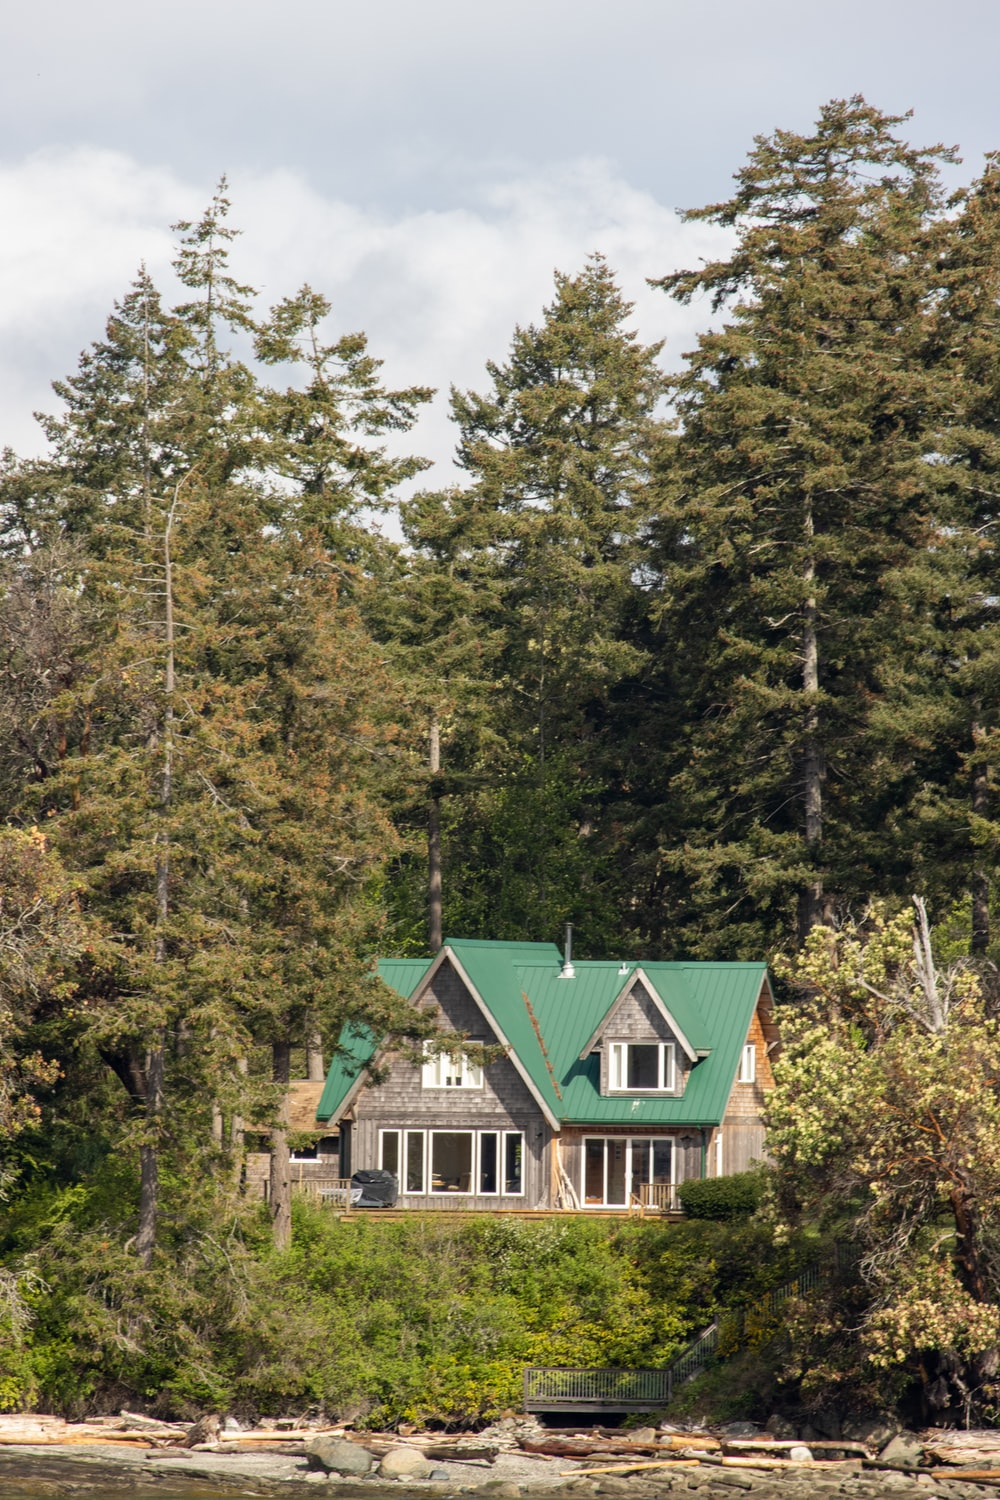 green and white wooden house surrounded by green trees under white clouds and blue sky during